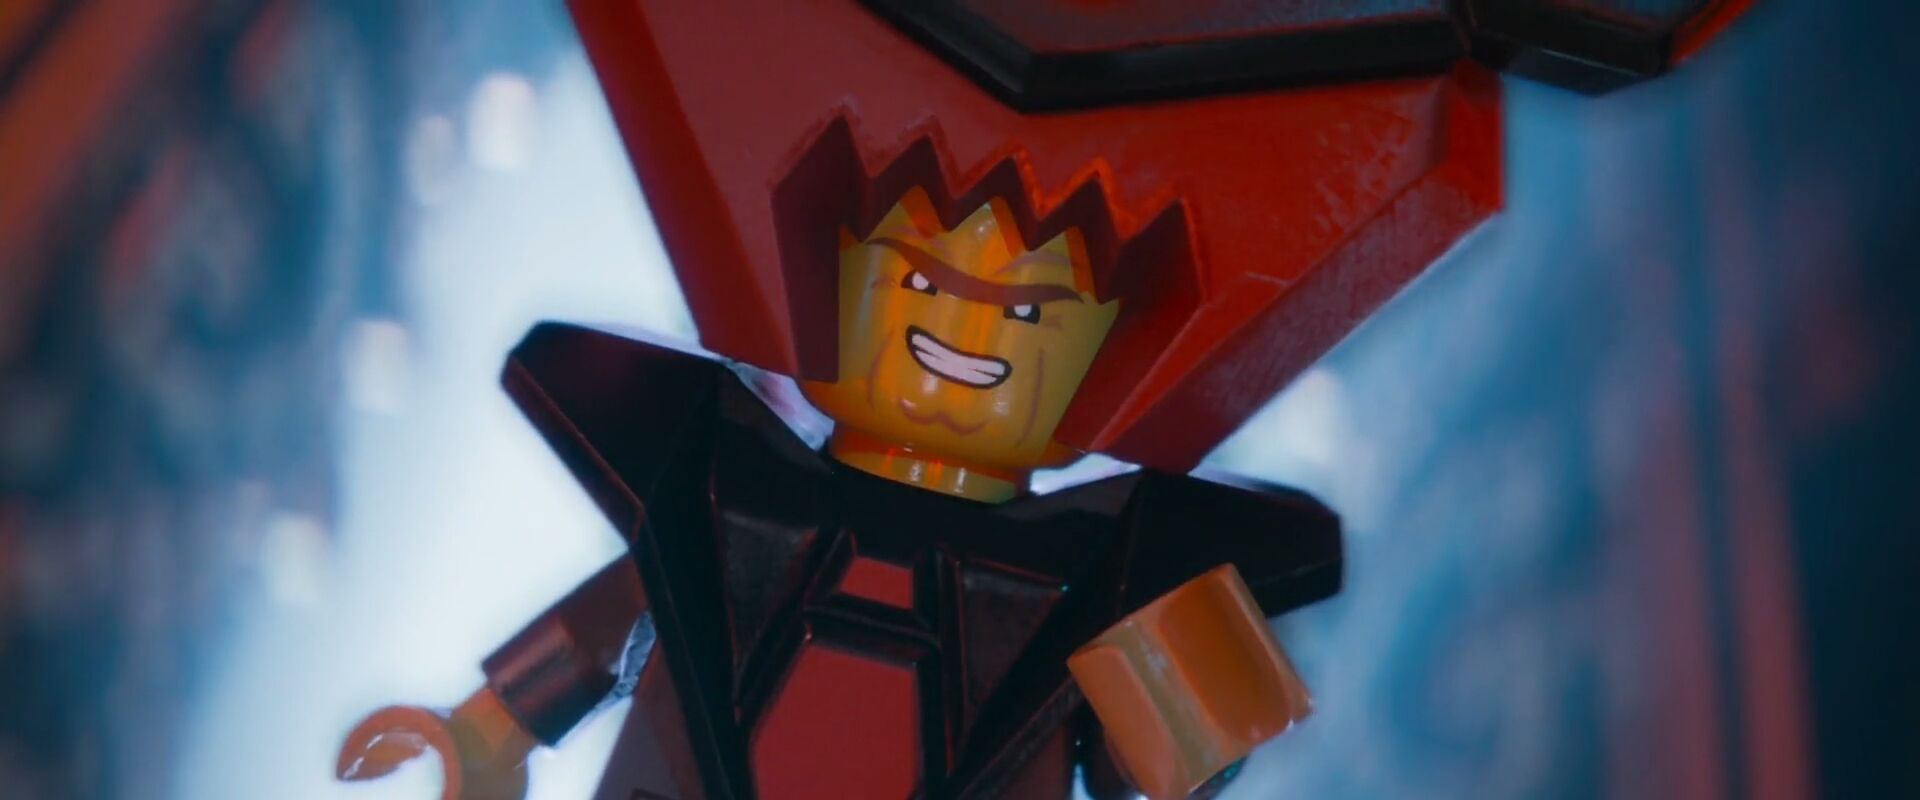 The Lego Movie Film Review Everywhere By Juran Hakim